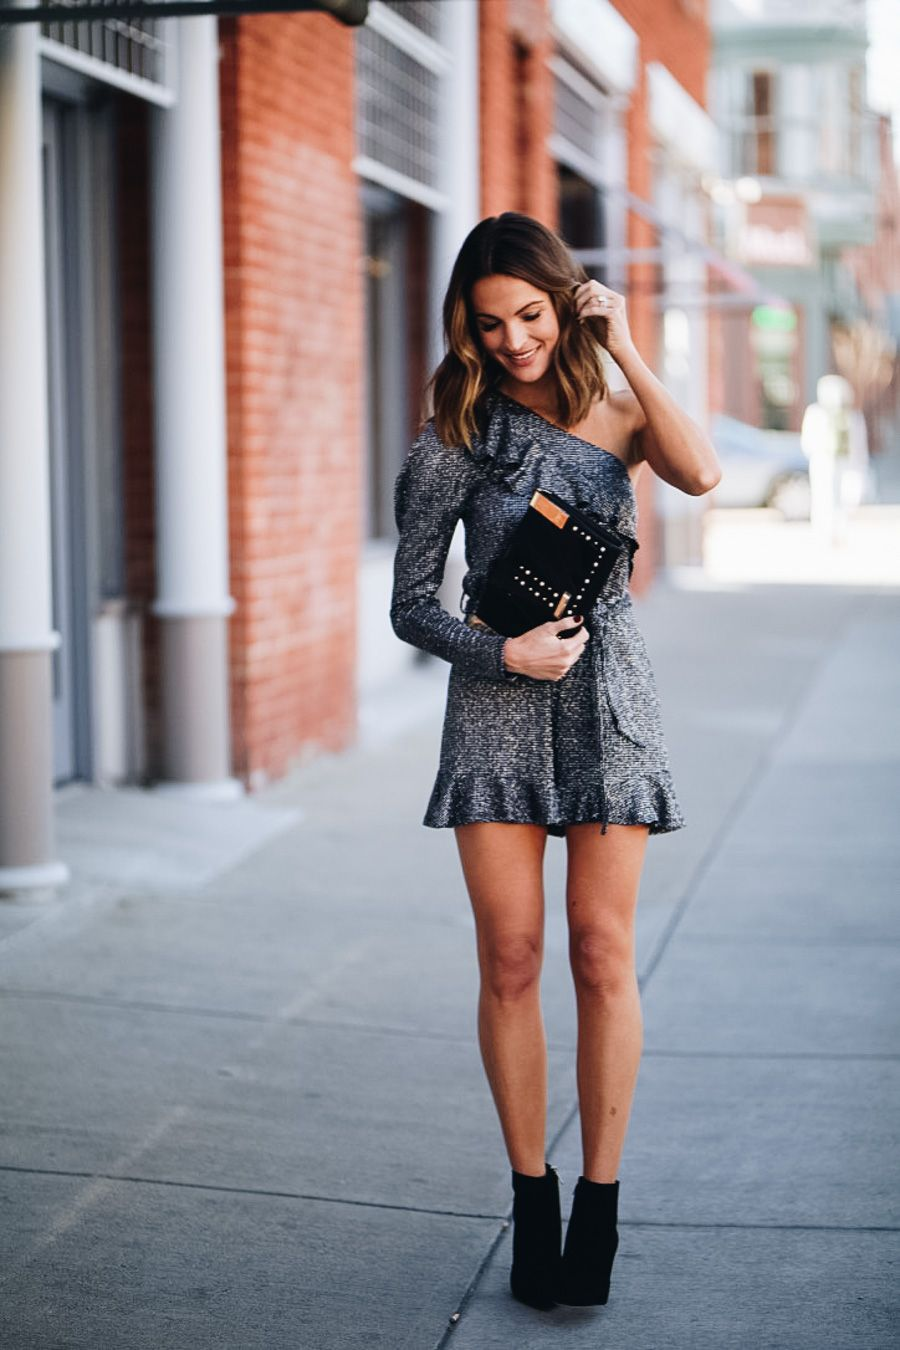 budget-friendly new year's eve outfit | New years eve ...